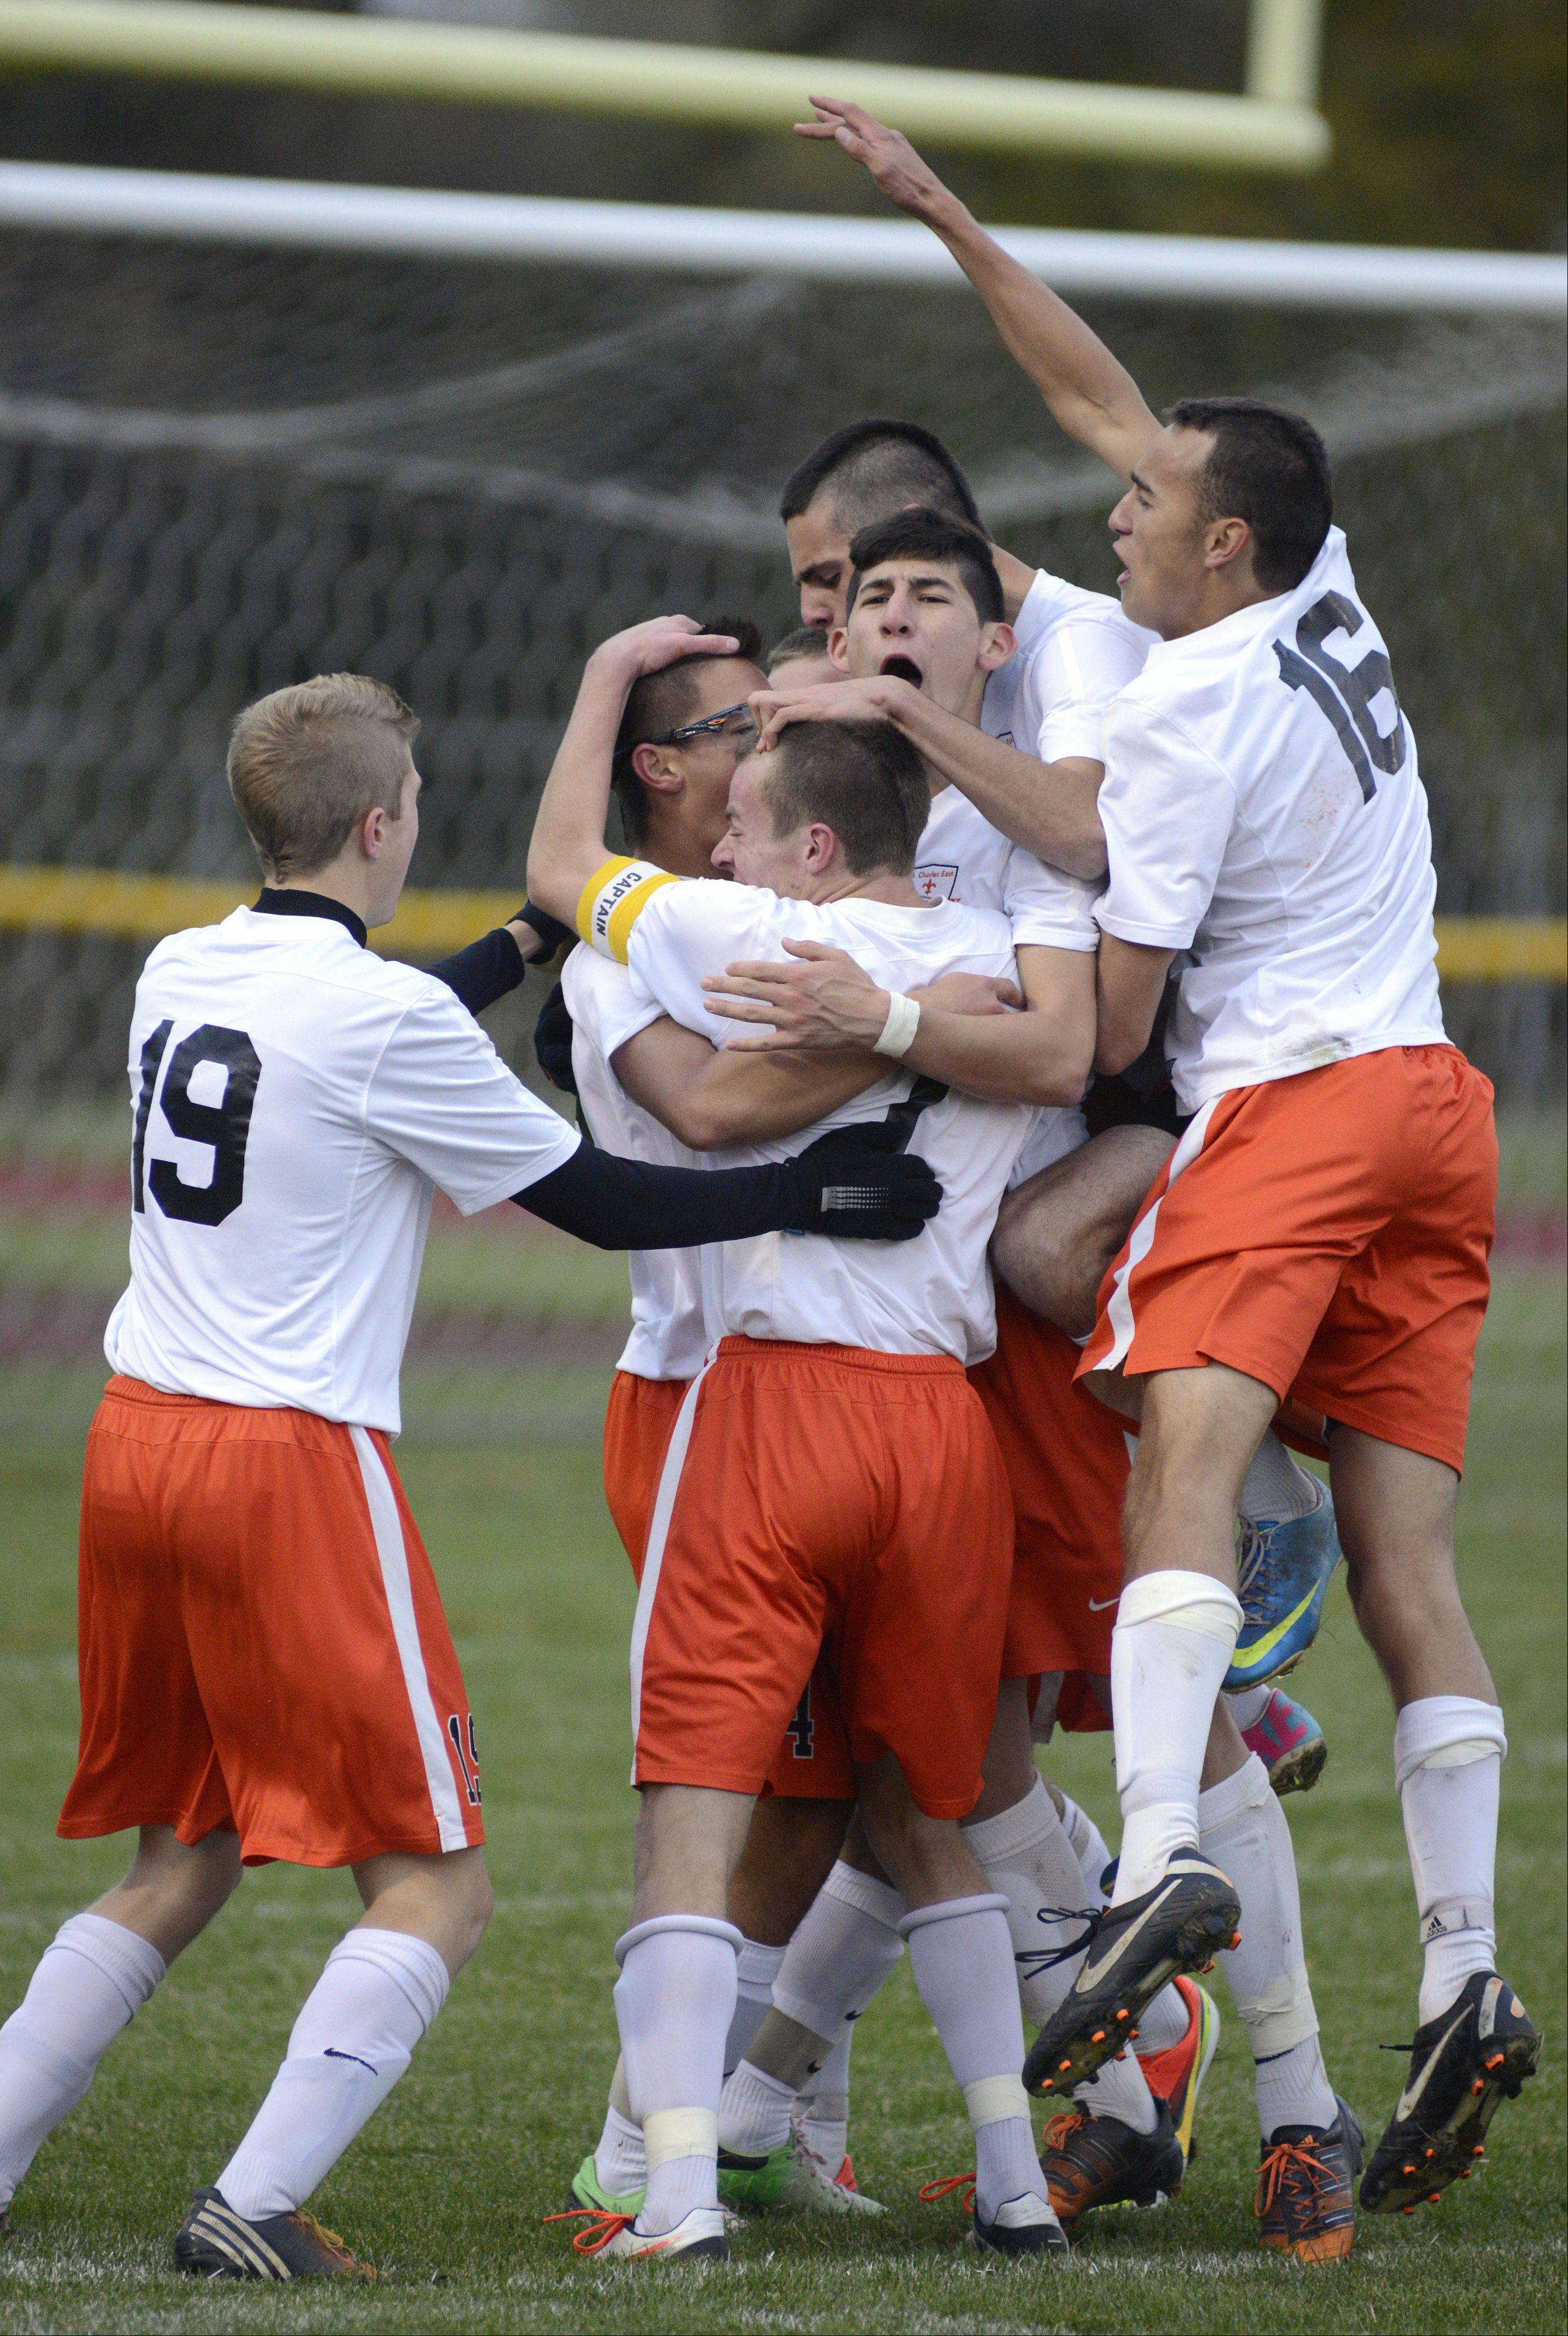 St. Charles East's Zach Manibog, center, is swarmed by teammates after scoring the first goal for the Saints Wednesday.